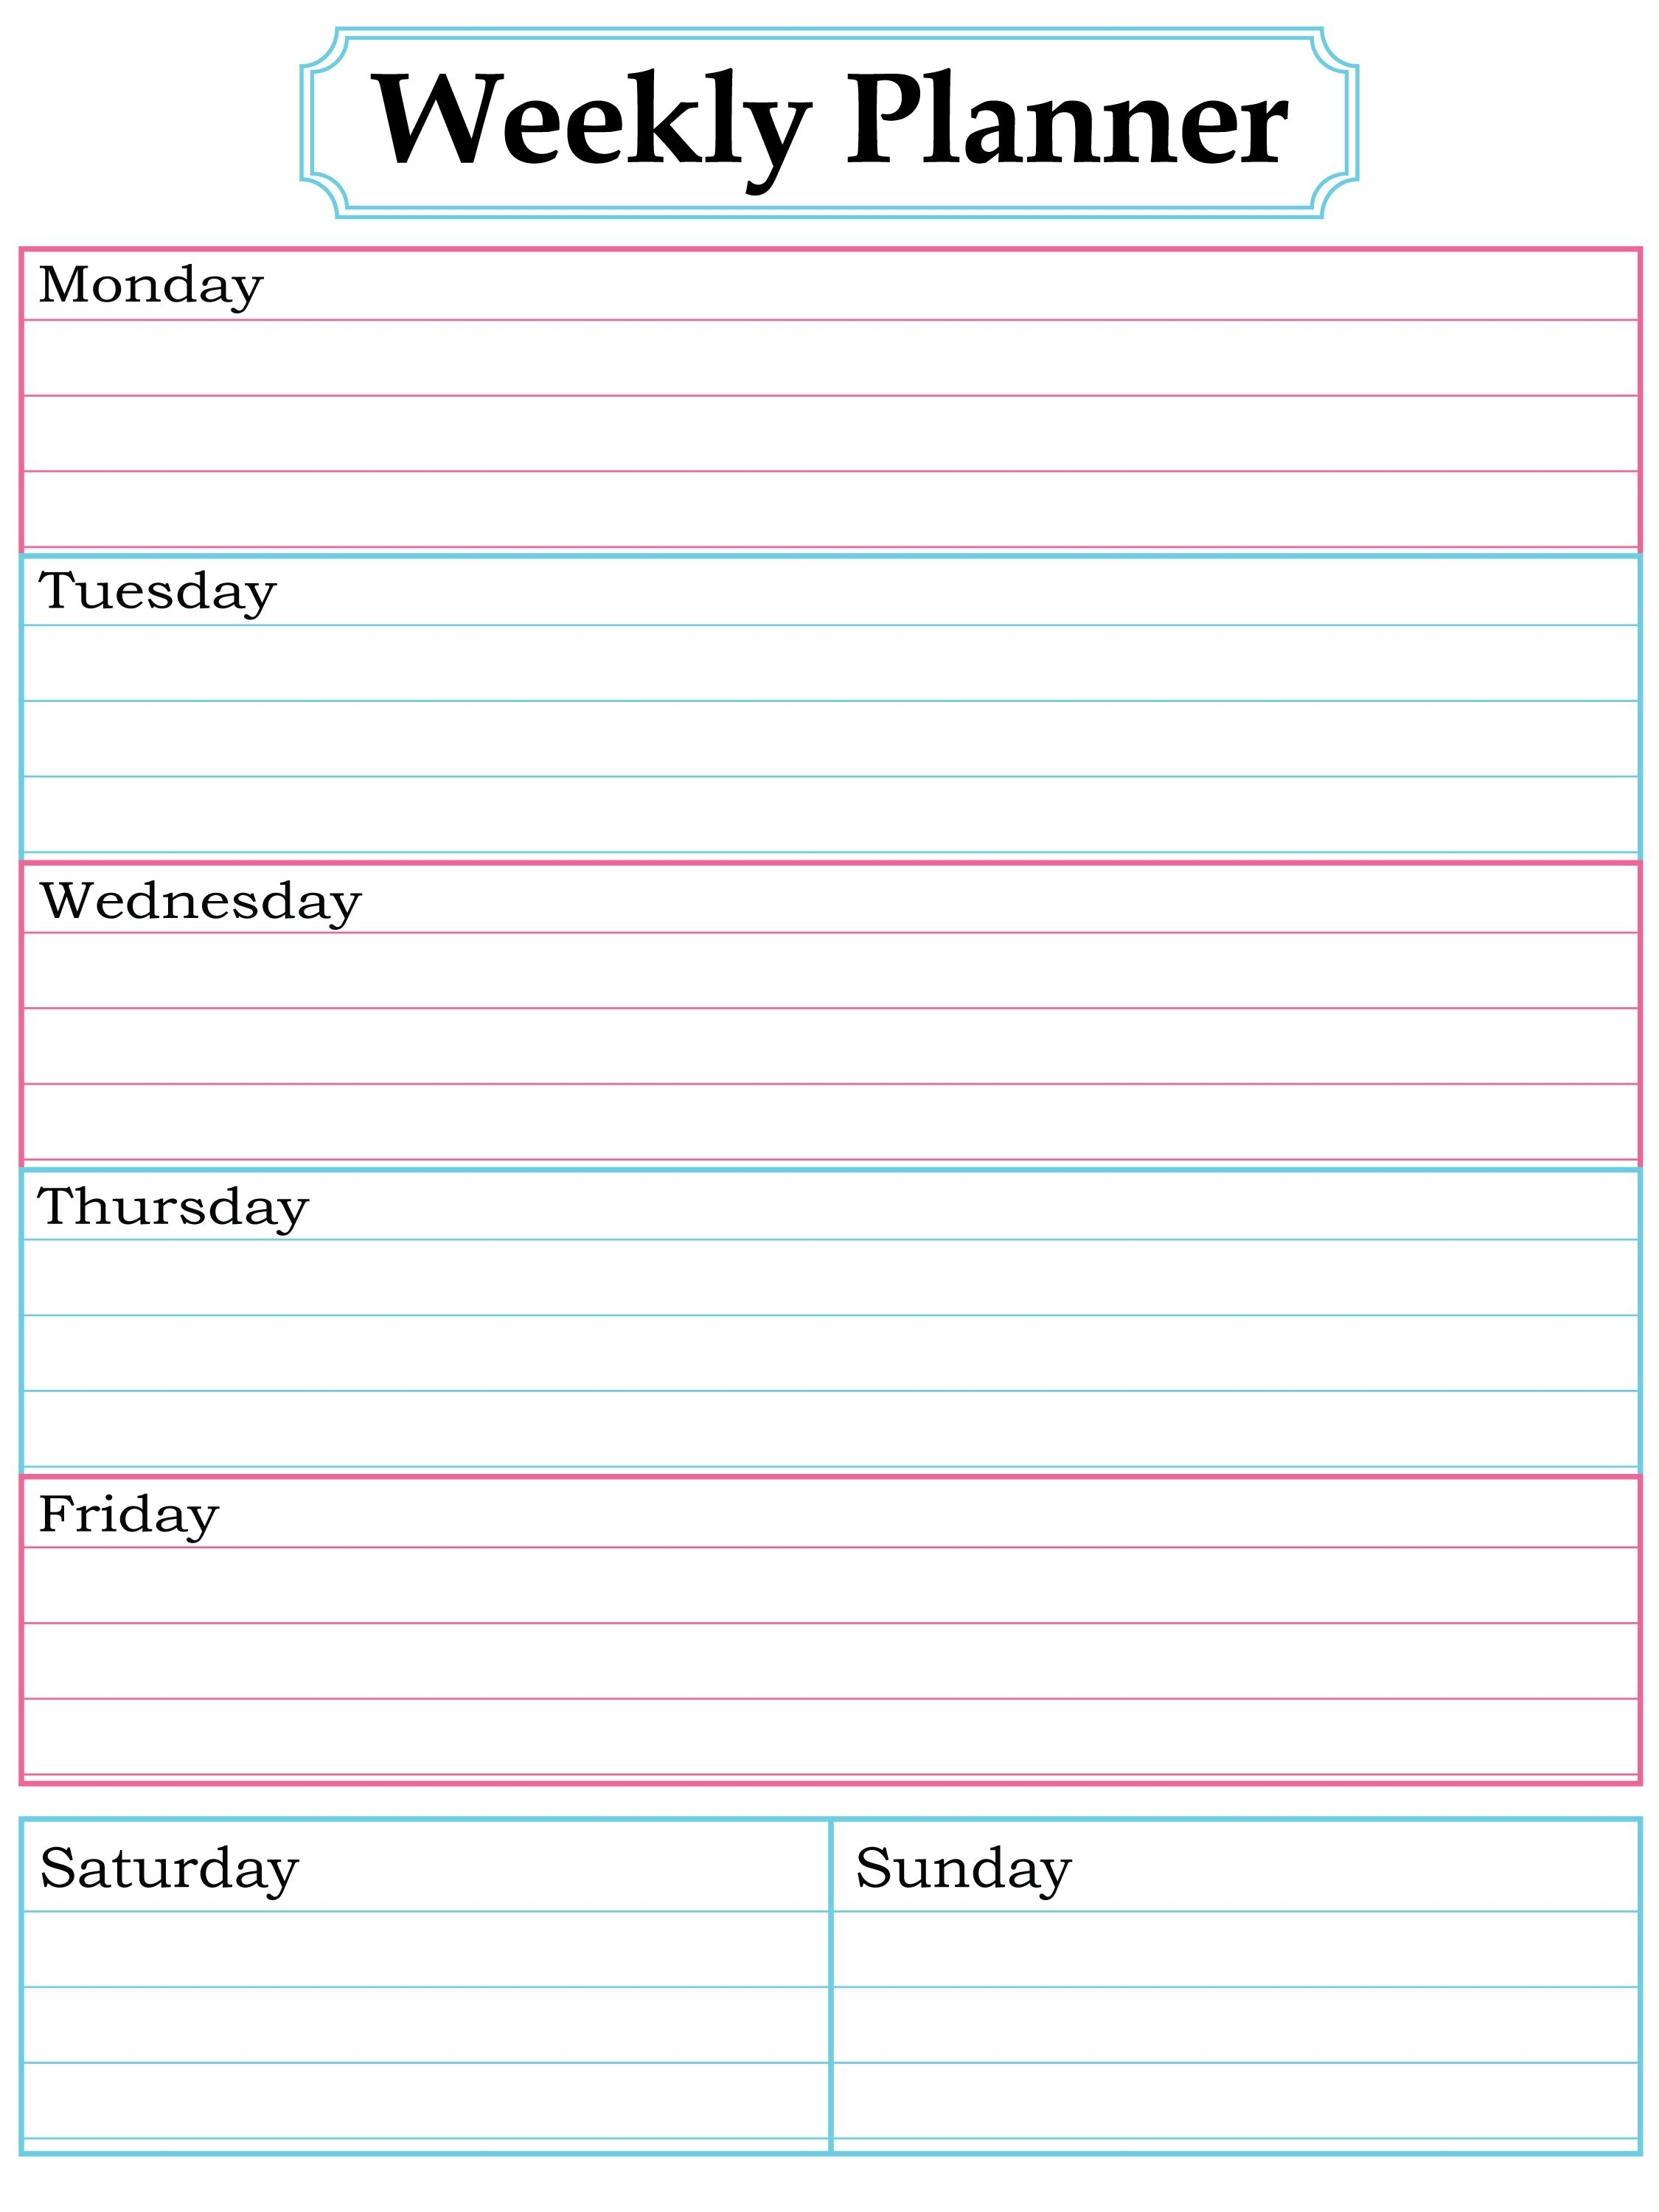 Weekly Planner Printable Nice Simple Clean Lines